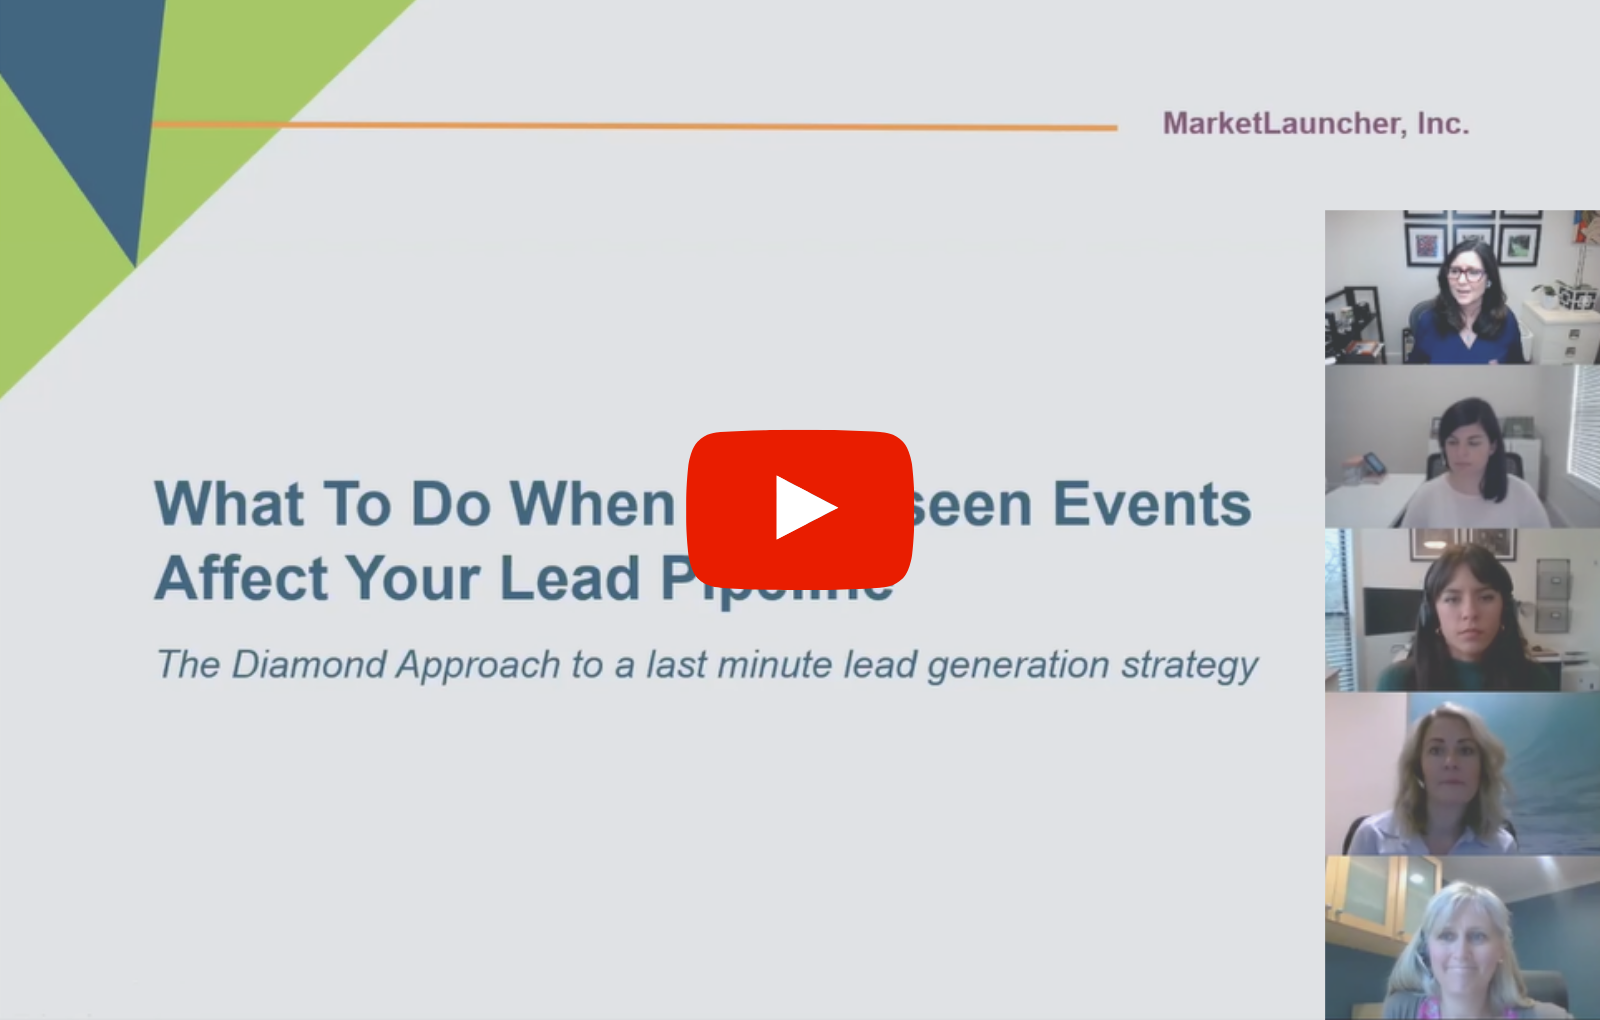 Webinar: What To Do When Unforeseen Events Affect Your Lead Pipeline